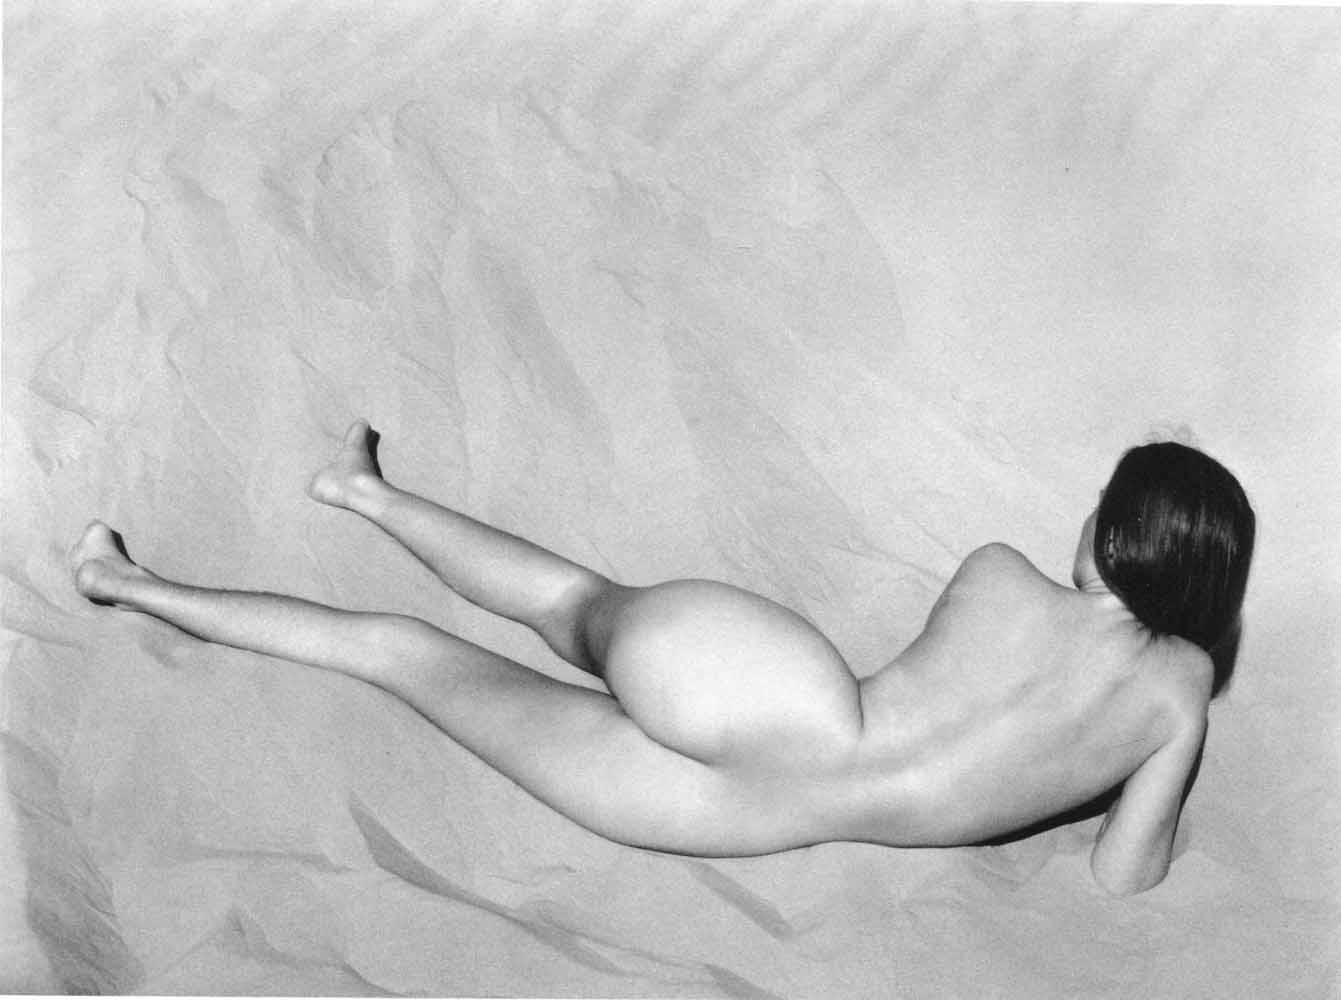 Edward Weston, Nude. Oceano, 1936